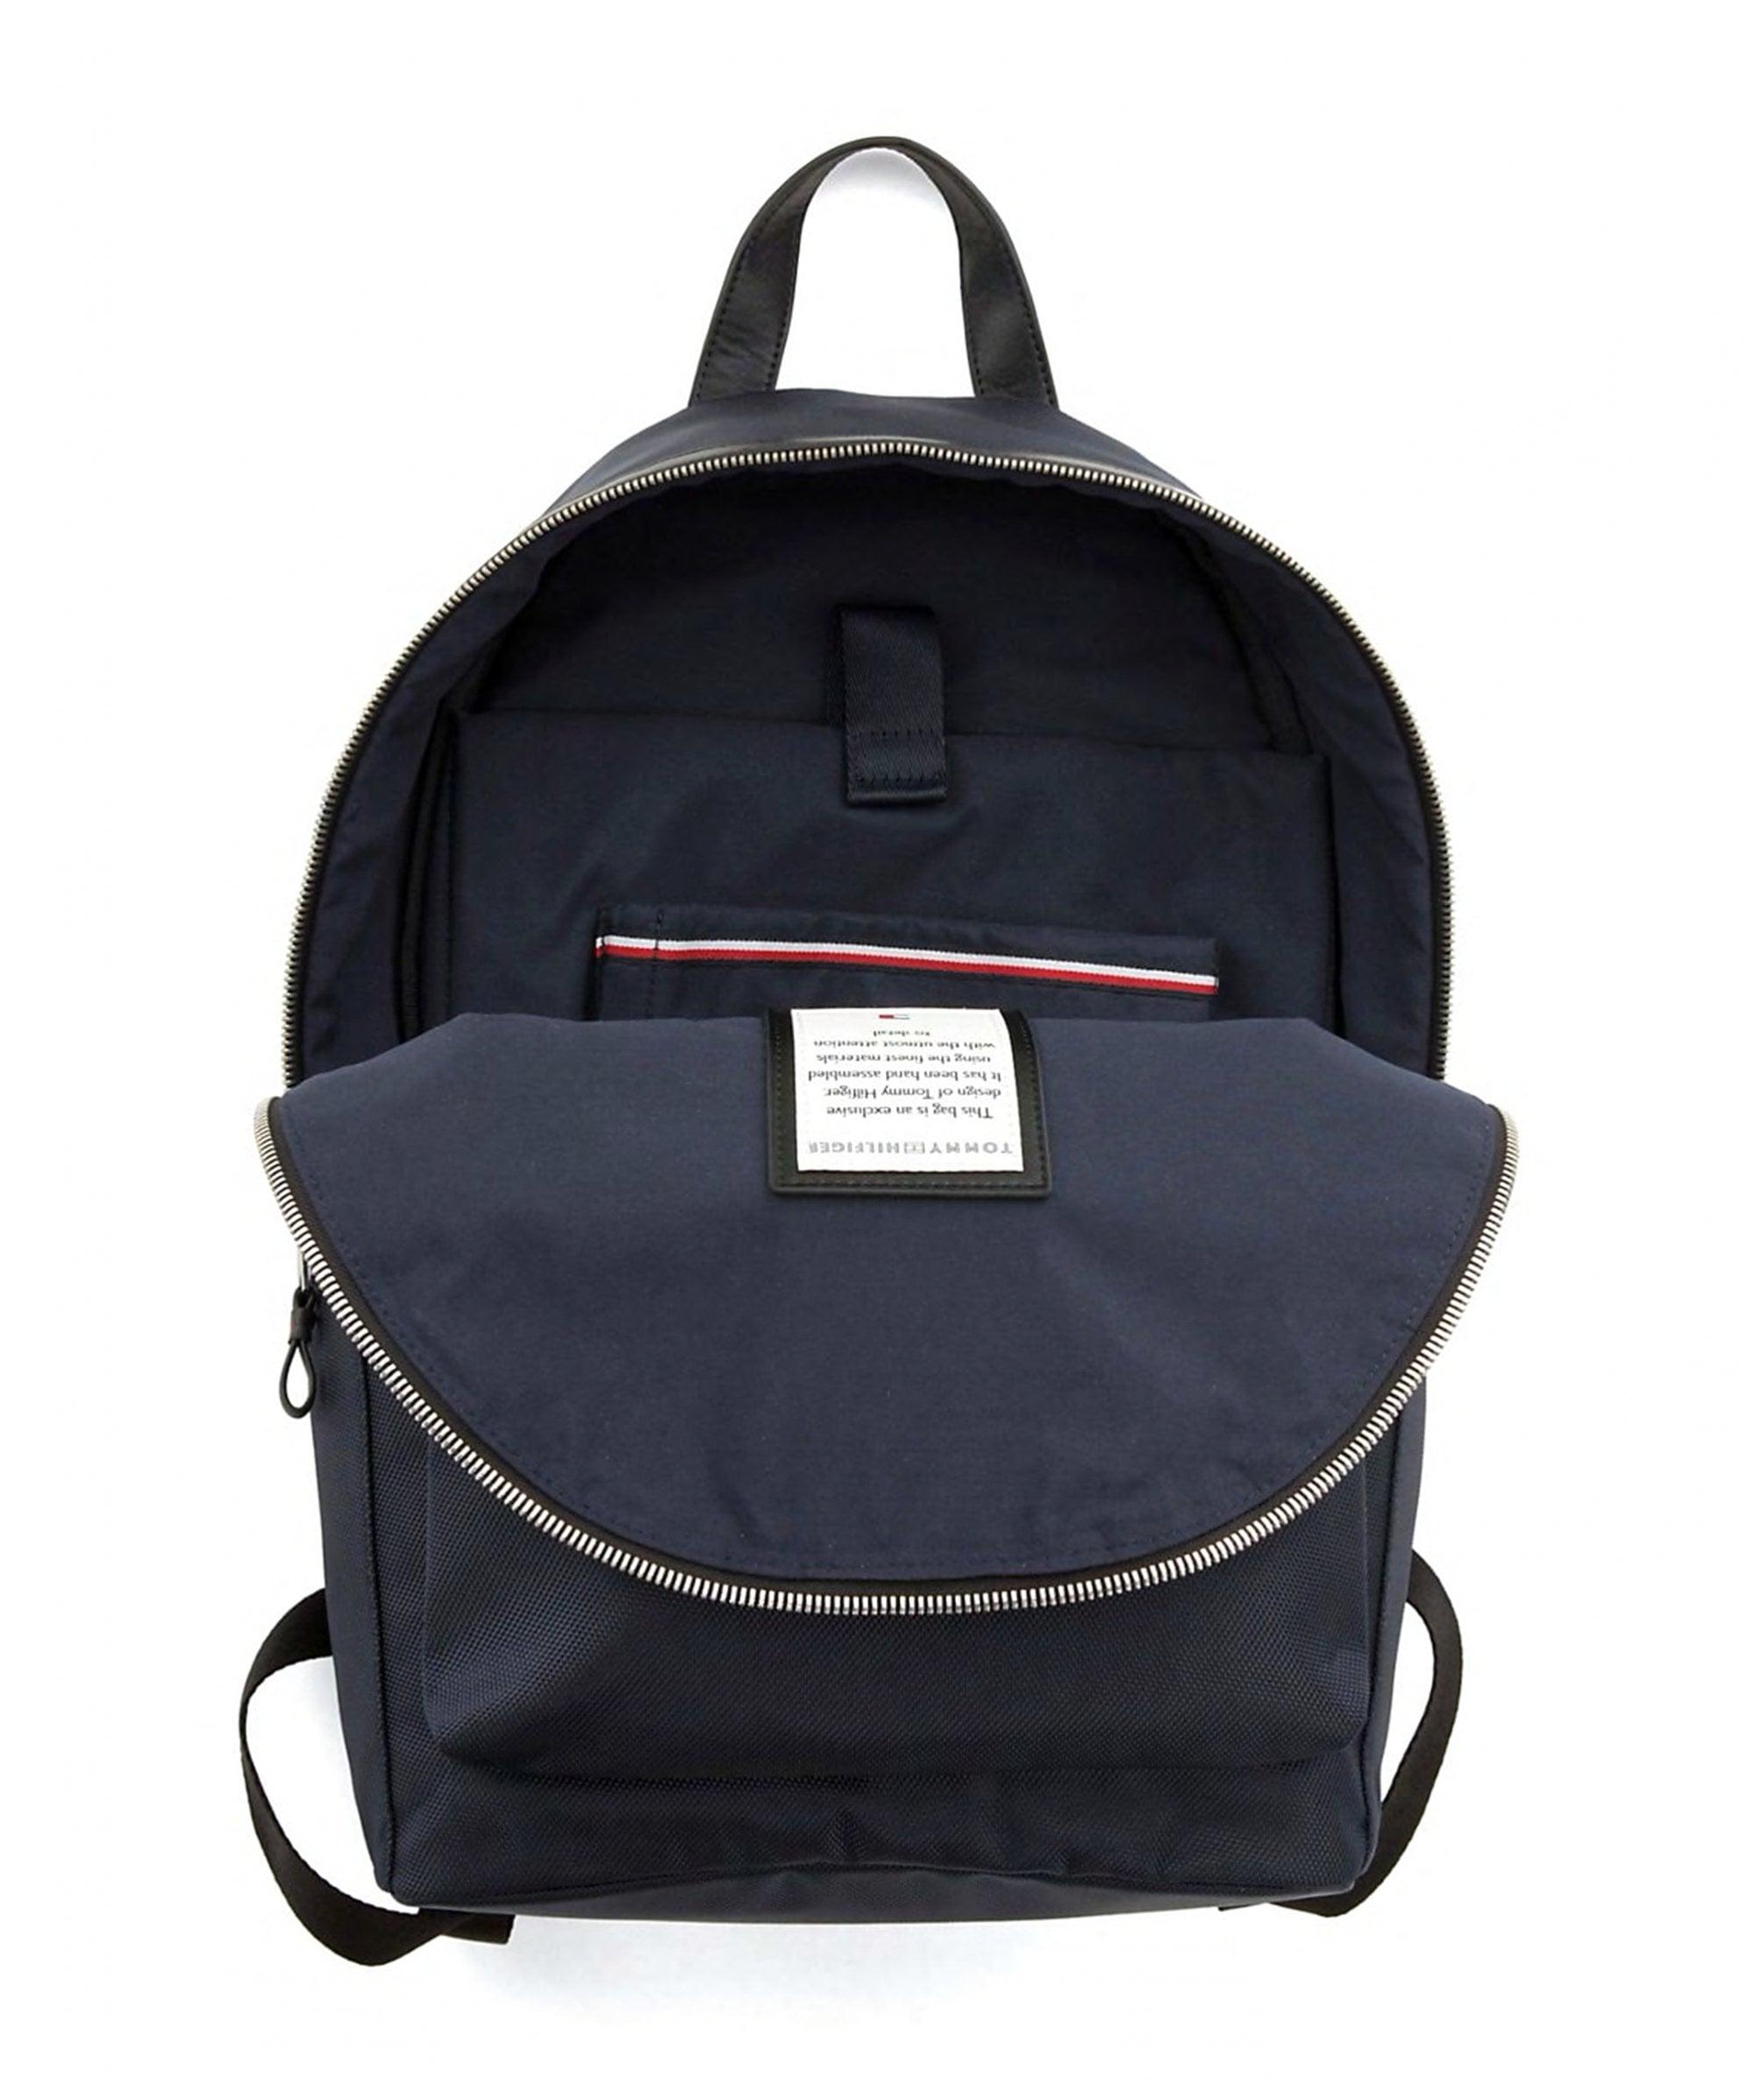 d627e88c54f Lyst - Tommy Hilfiger Elevated Backpack in Blue for Men